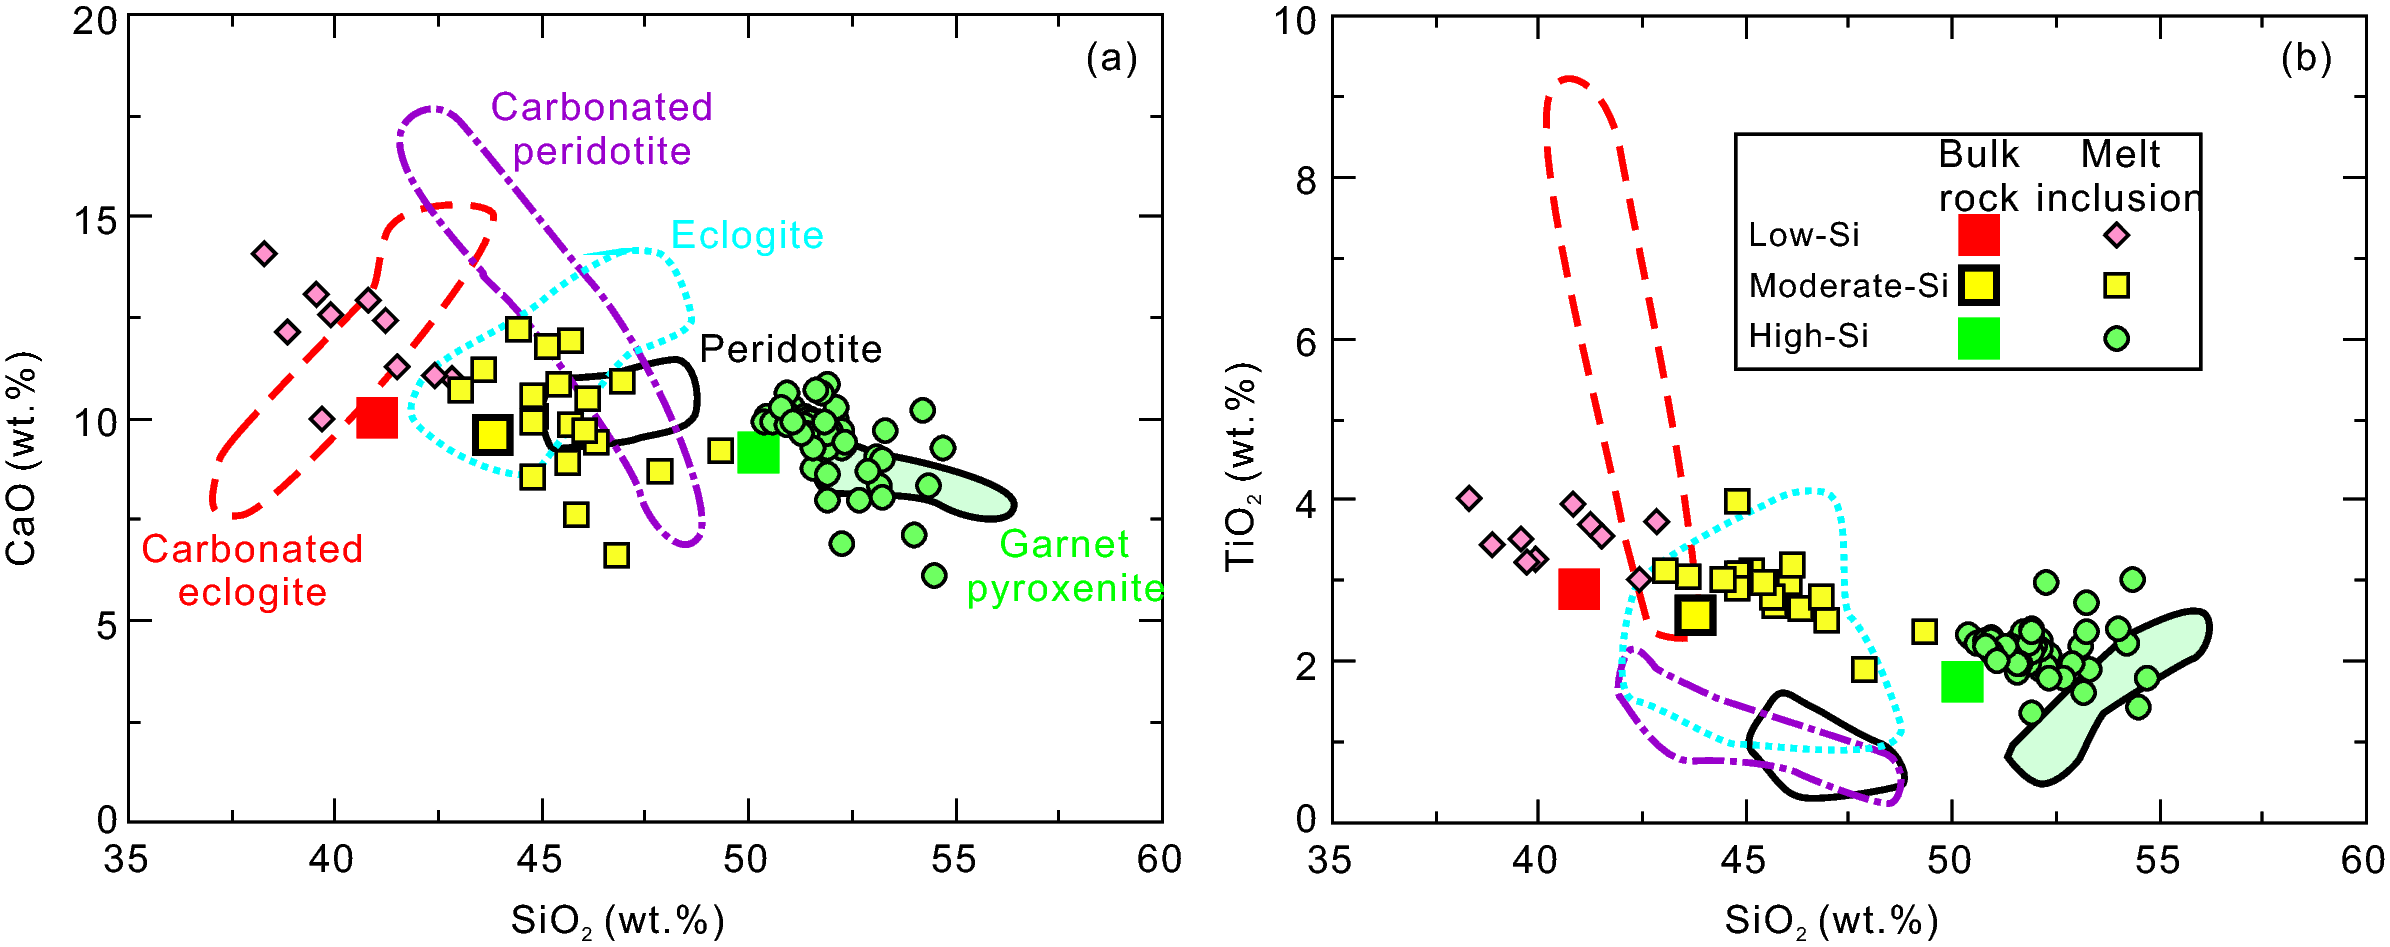 Generation of Cenozoic intraplate basalts in the big mantle